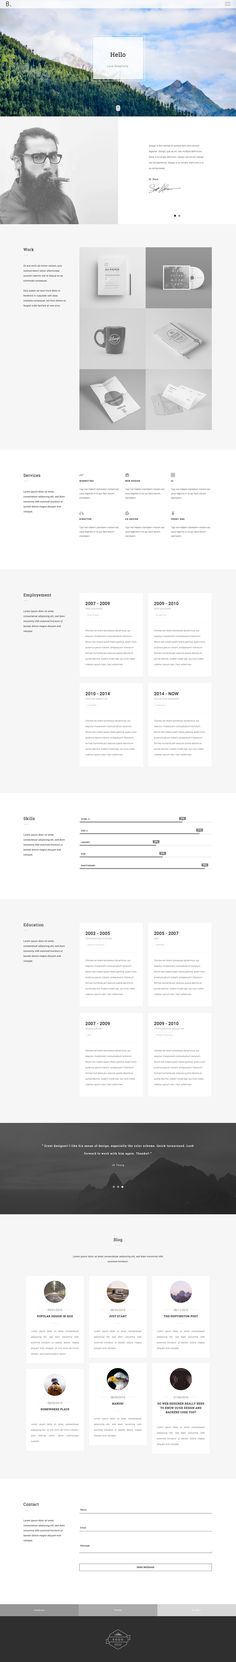 Bodo – is a Professional Responsive Personal and Portfolio Resume HTML5 Template which has been built using the Twitter Bootstrap framework.Features:- HTML5 & CSS3- Bootstrap- Responsive- Easy to use- AnimationImage Credit:unsplash.com ,bigstock…